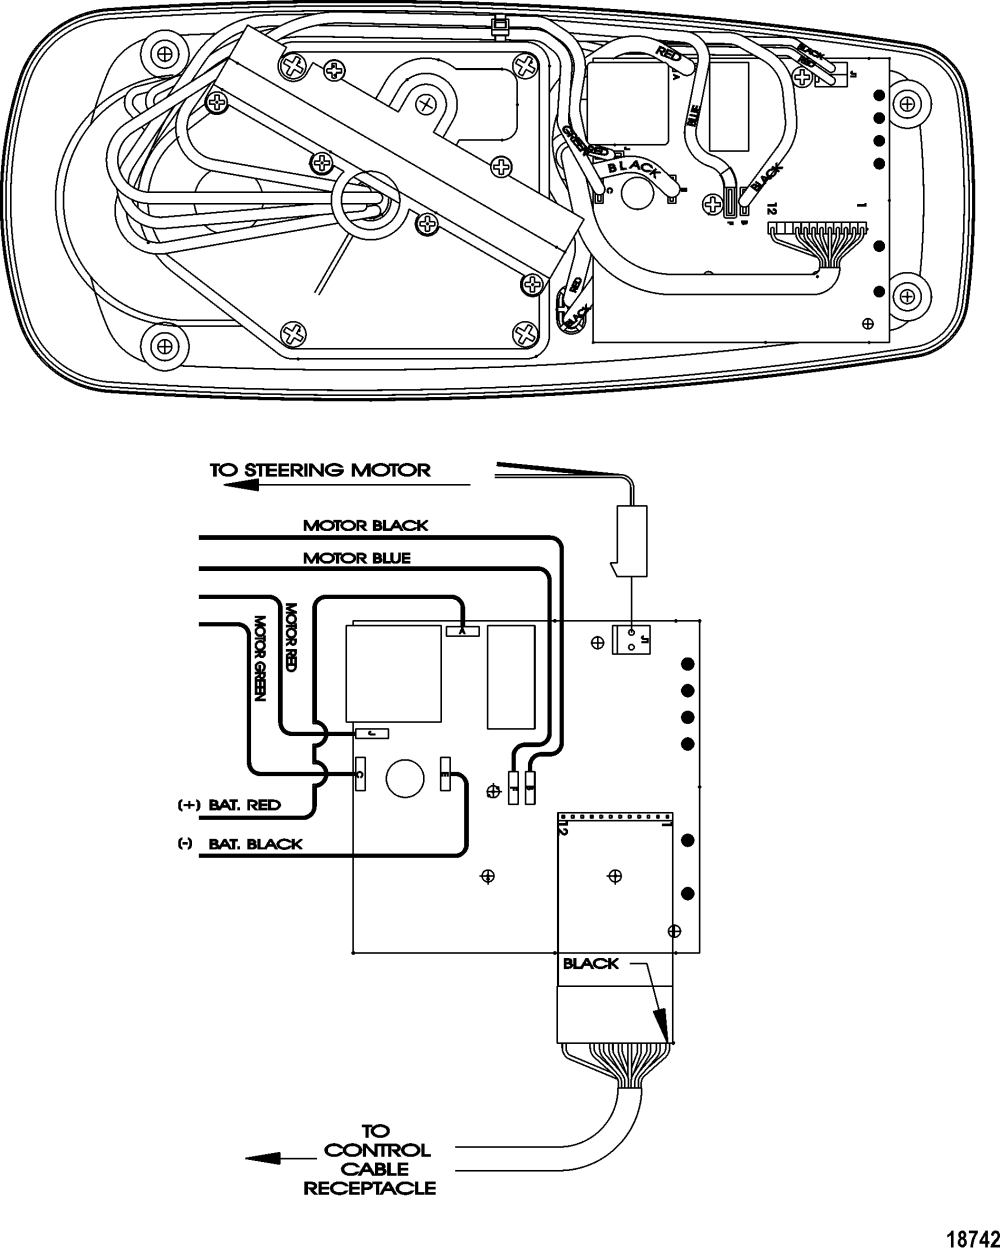 medium resolution of motorguide trolling motor wiring diagram